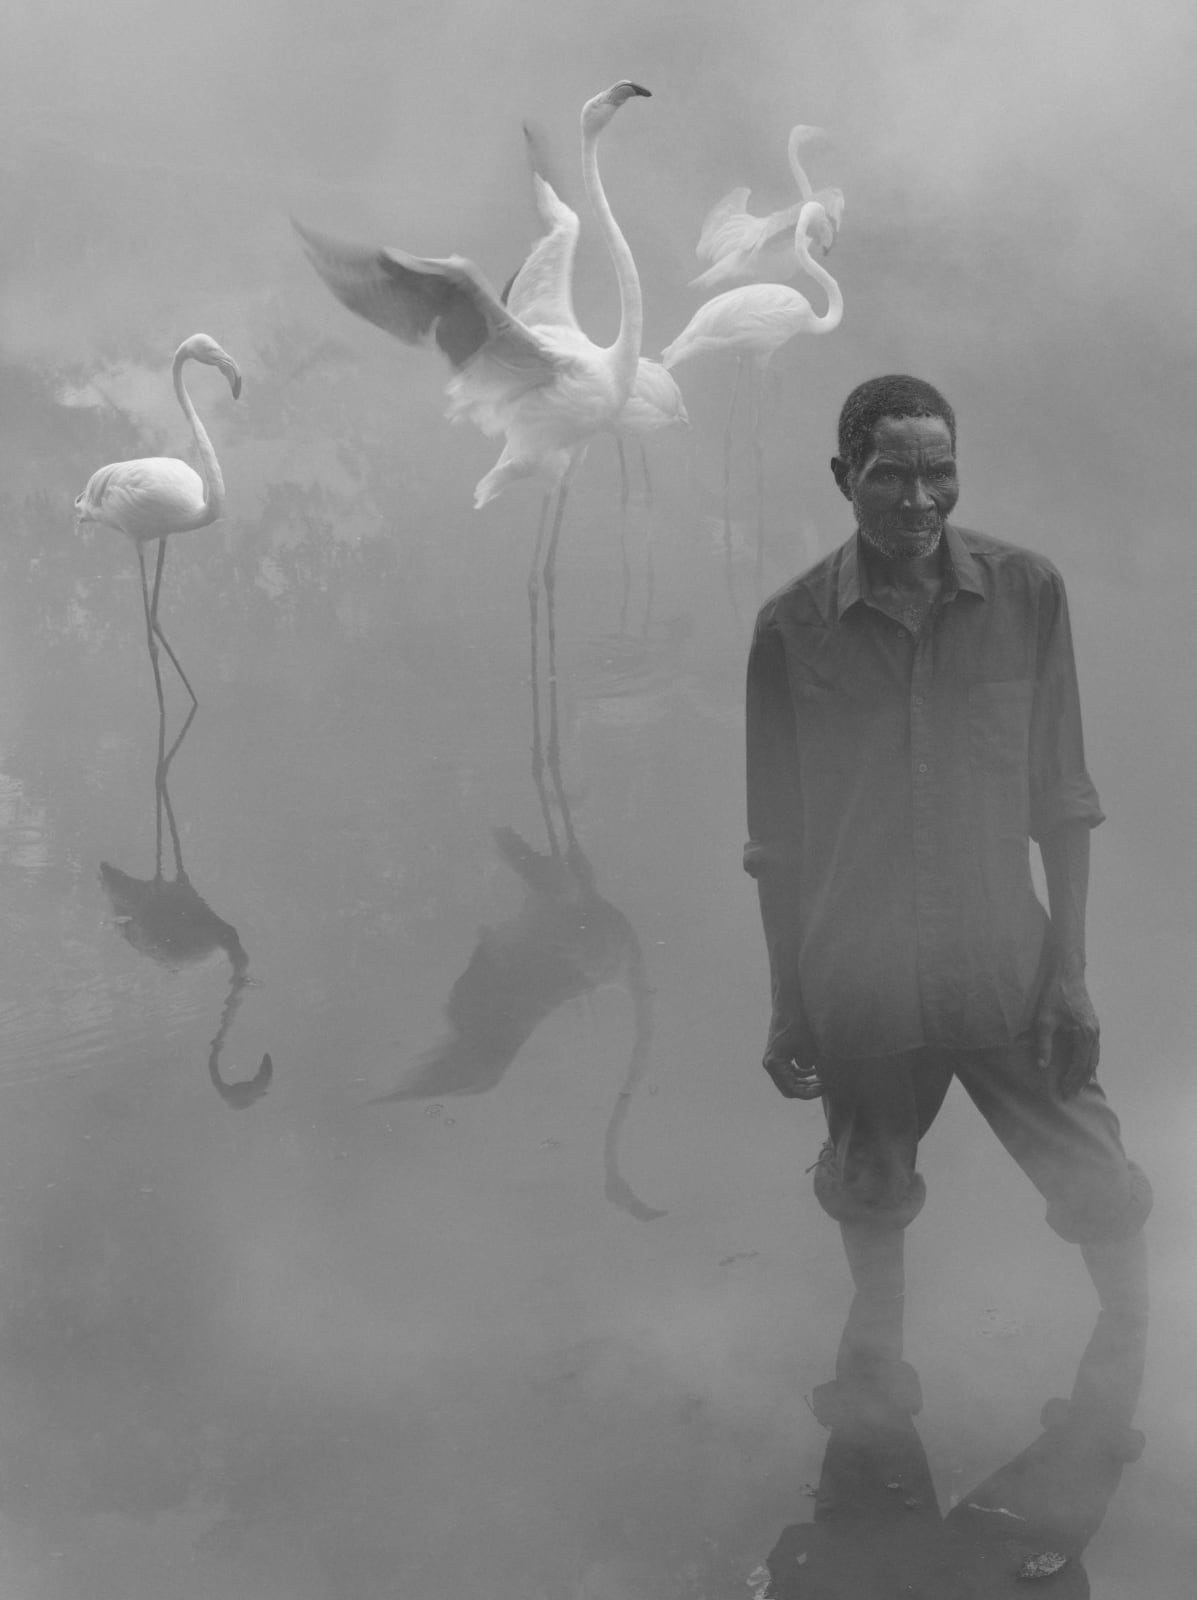 Patrick standing in water with flamingos flapping wings behind him in fog, Zimbabwe, from the Day May Break series by Nick Brandt